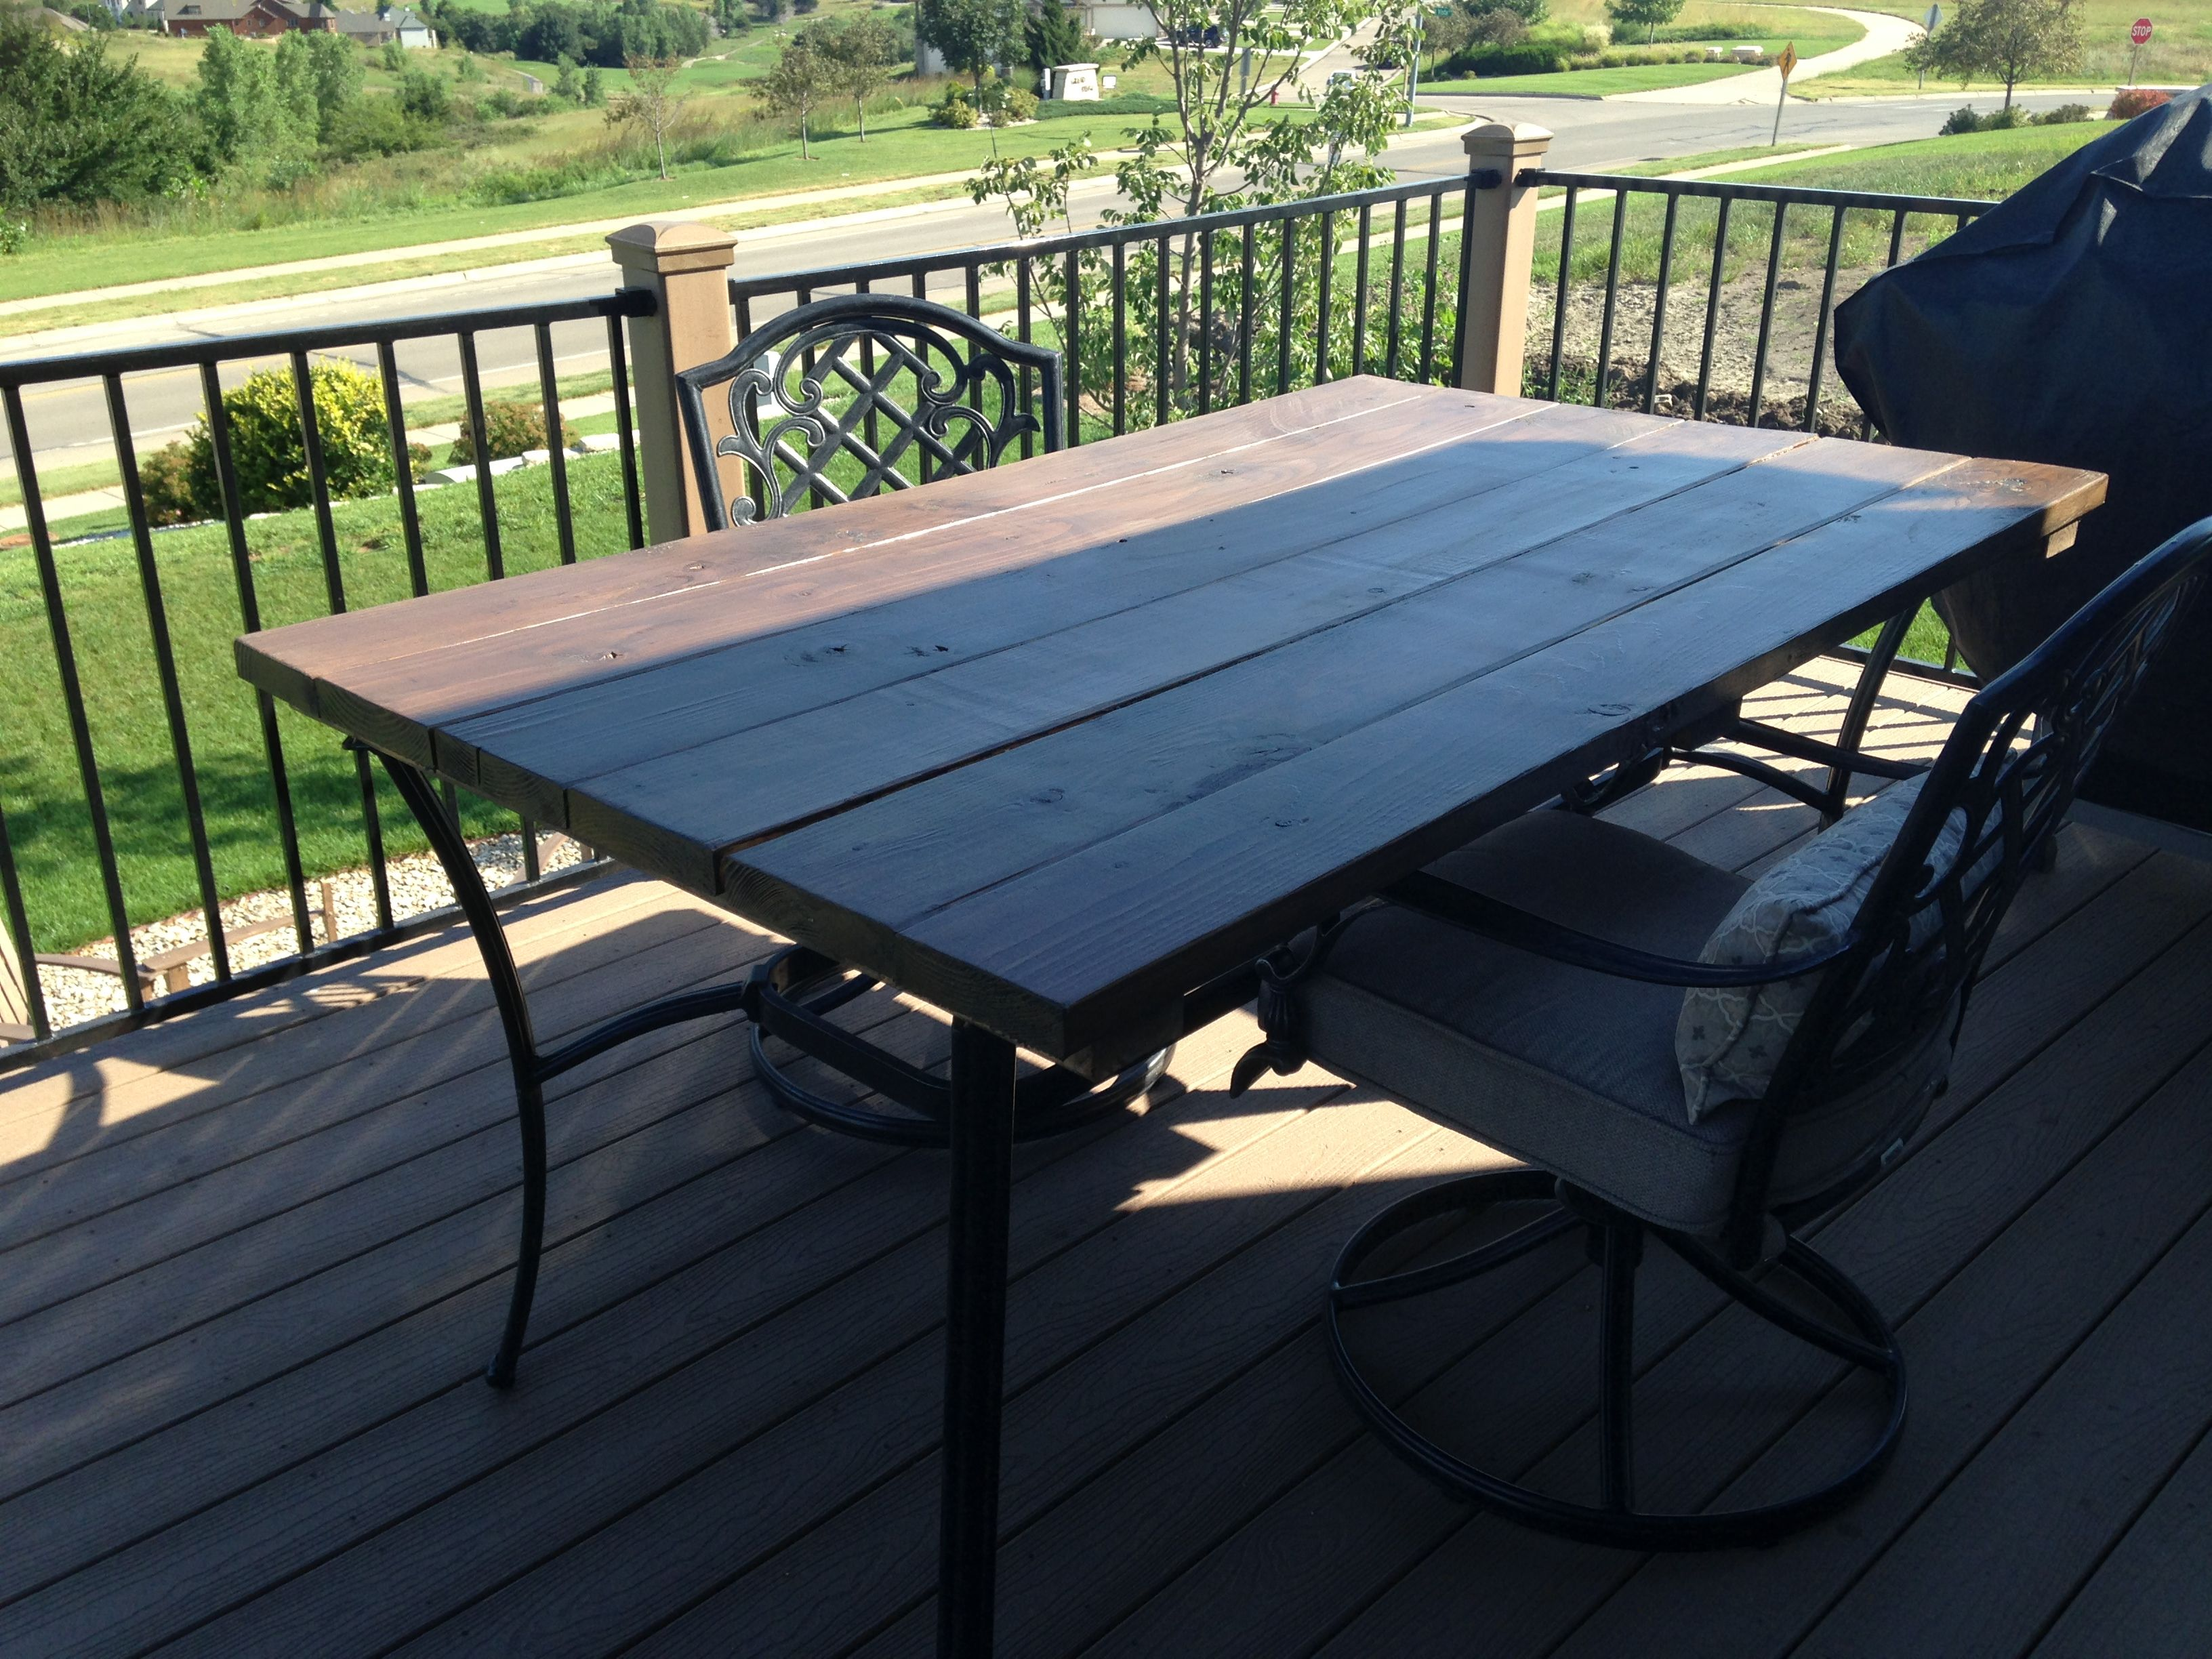 Pin By Dell Claypool Upp On Diy Diy Patio Table Outdoor Table Tops Wood Patio Table